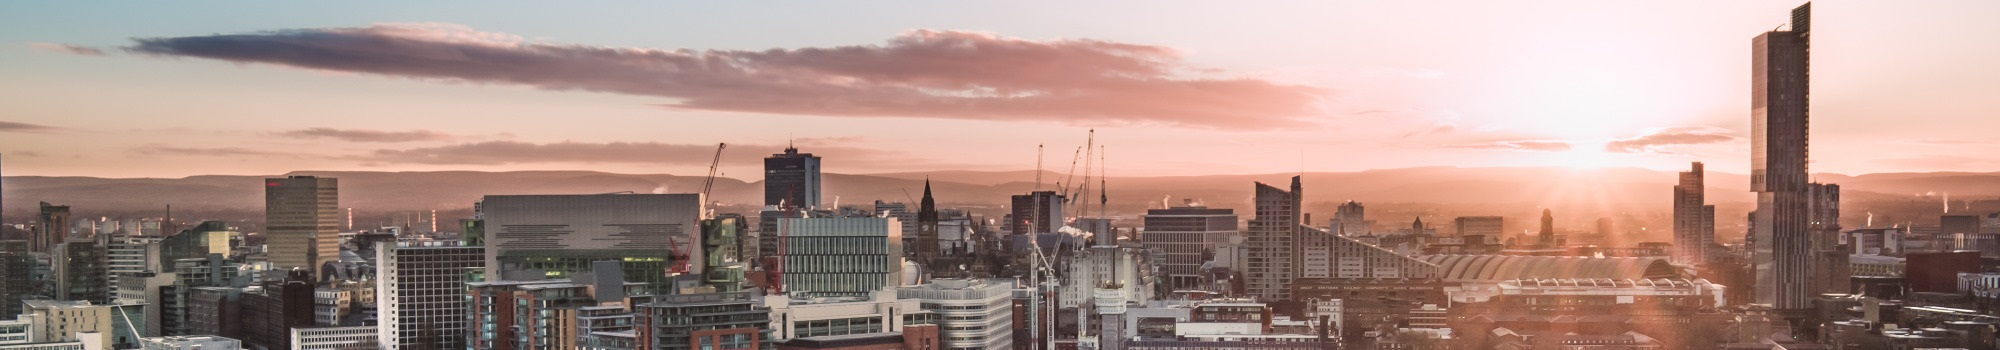 manchester-skyline-picture-id1067367850